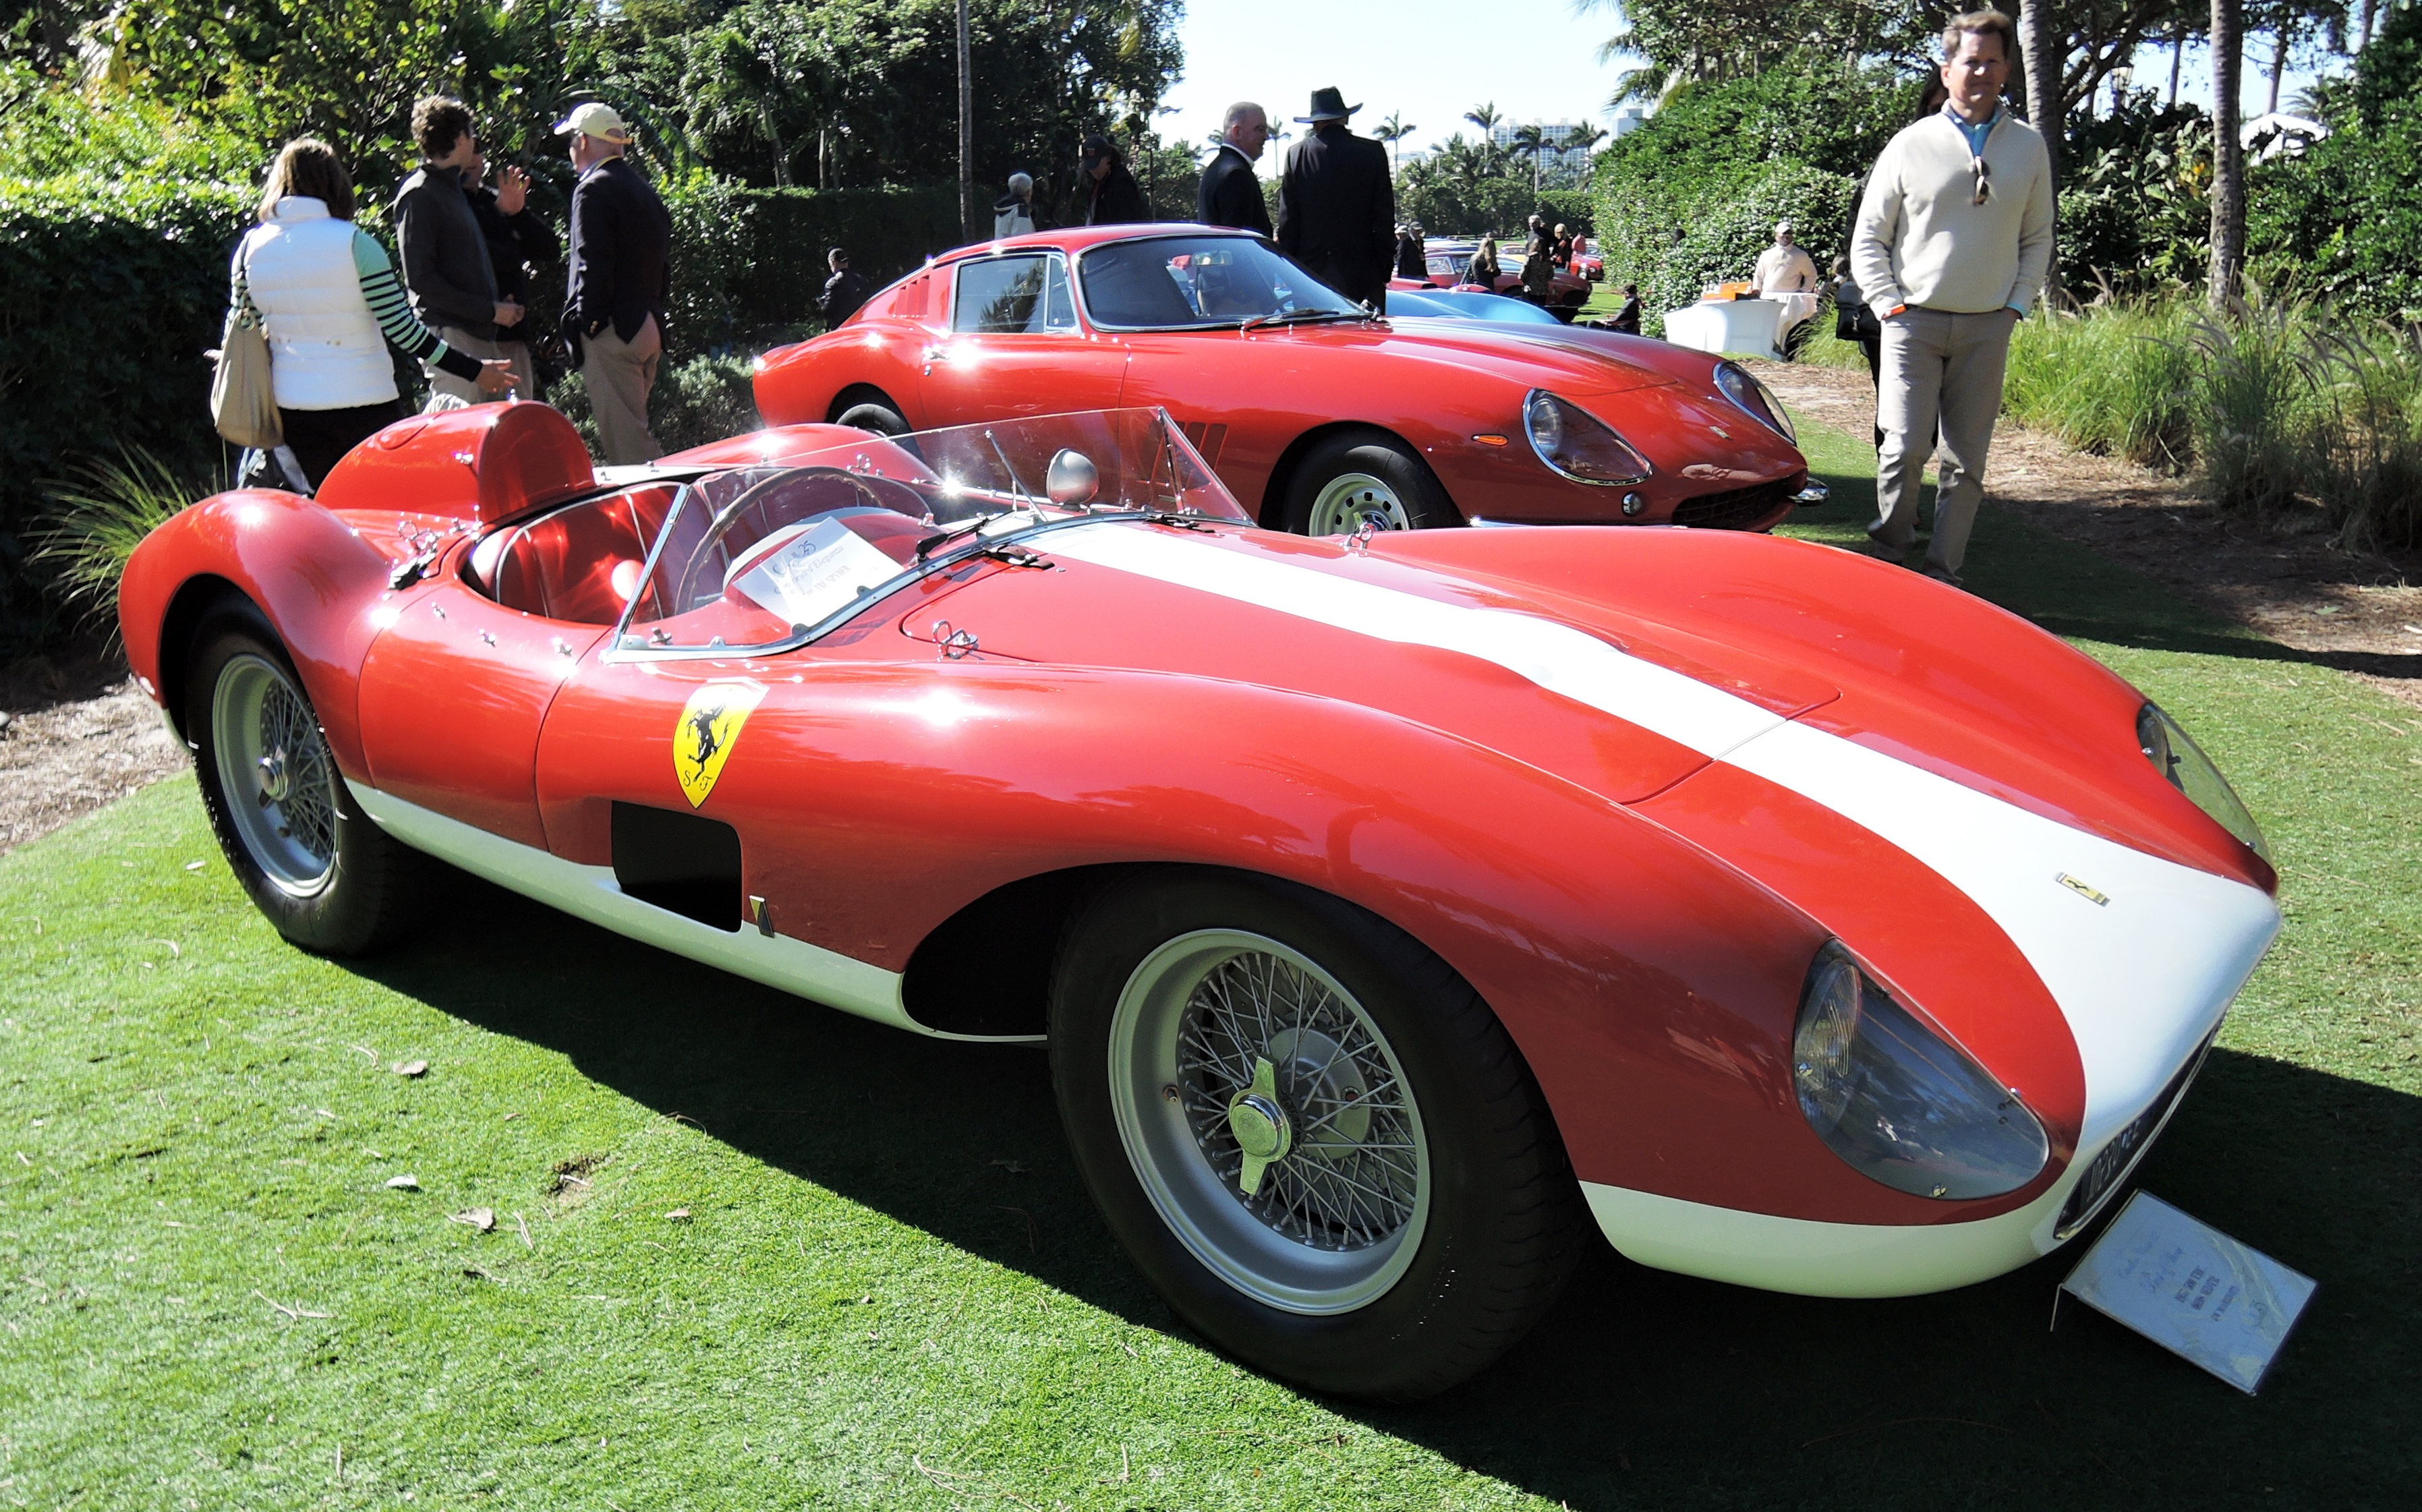 1957 Ferrari 500 TRC s/n 0698 MDTR owned by JW Marriott - cavallino classic